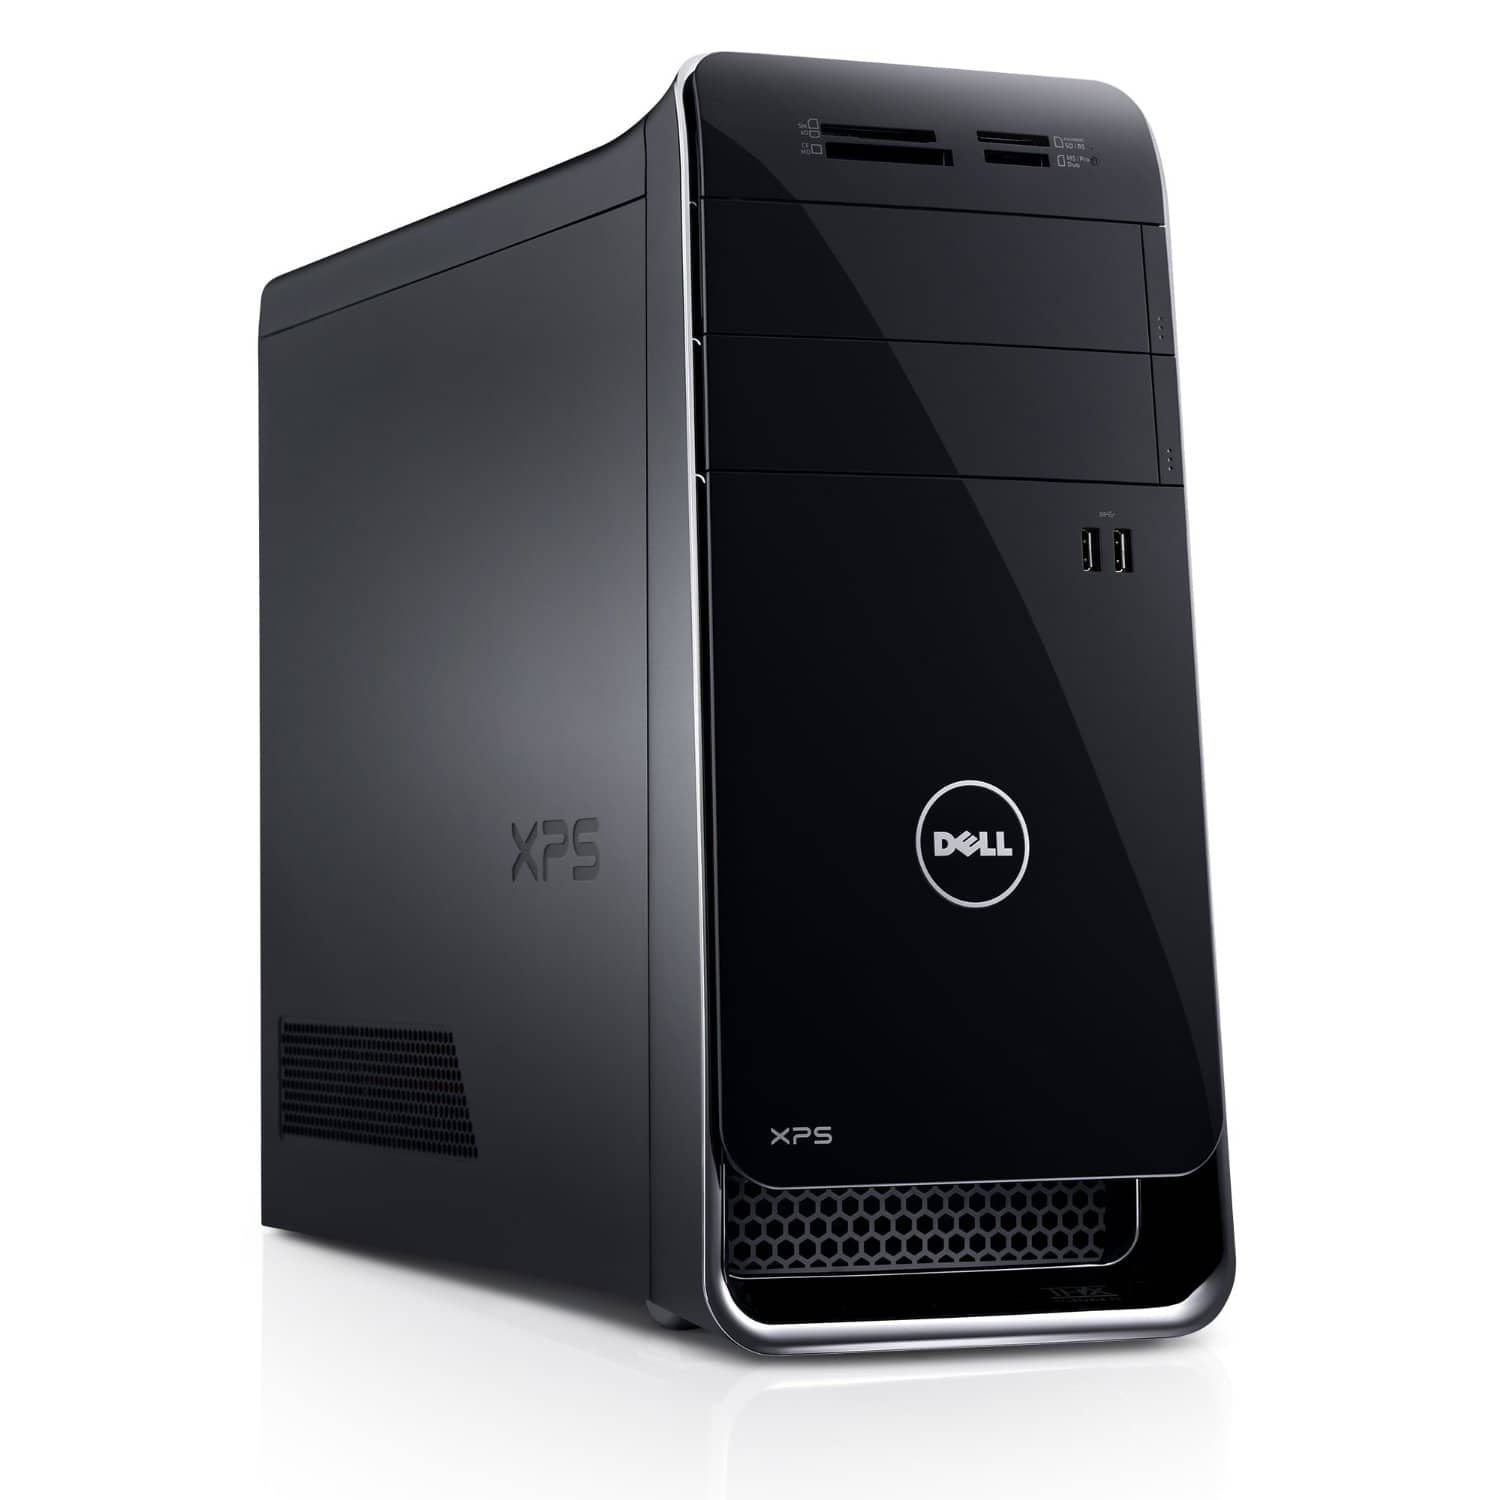 Dell Outlet Home Labor Day Sale: 30% off Inspiron Desktops; 25% off Inspiron Laptops; 25% off Venue Tablet & More